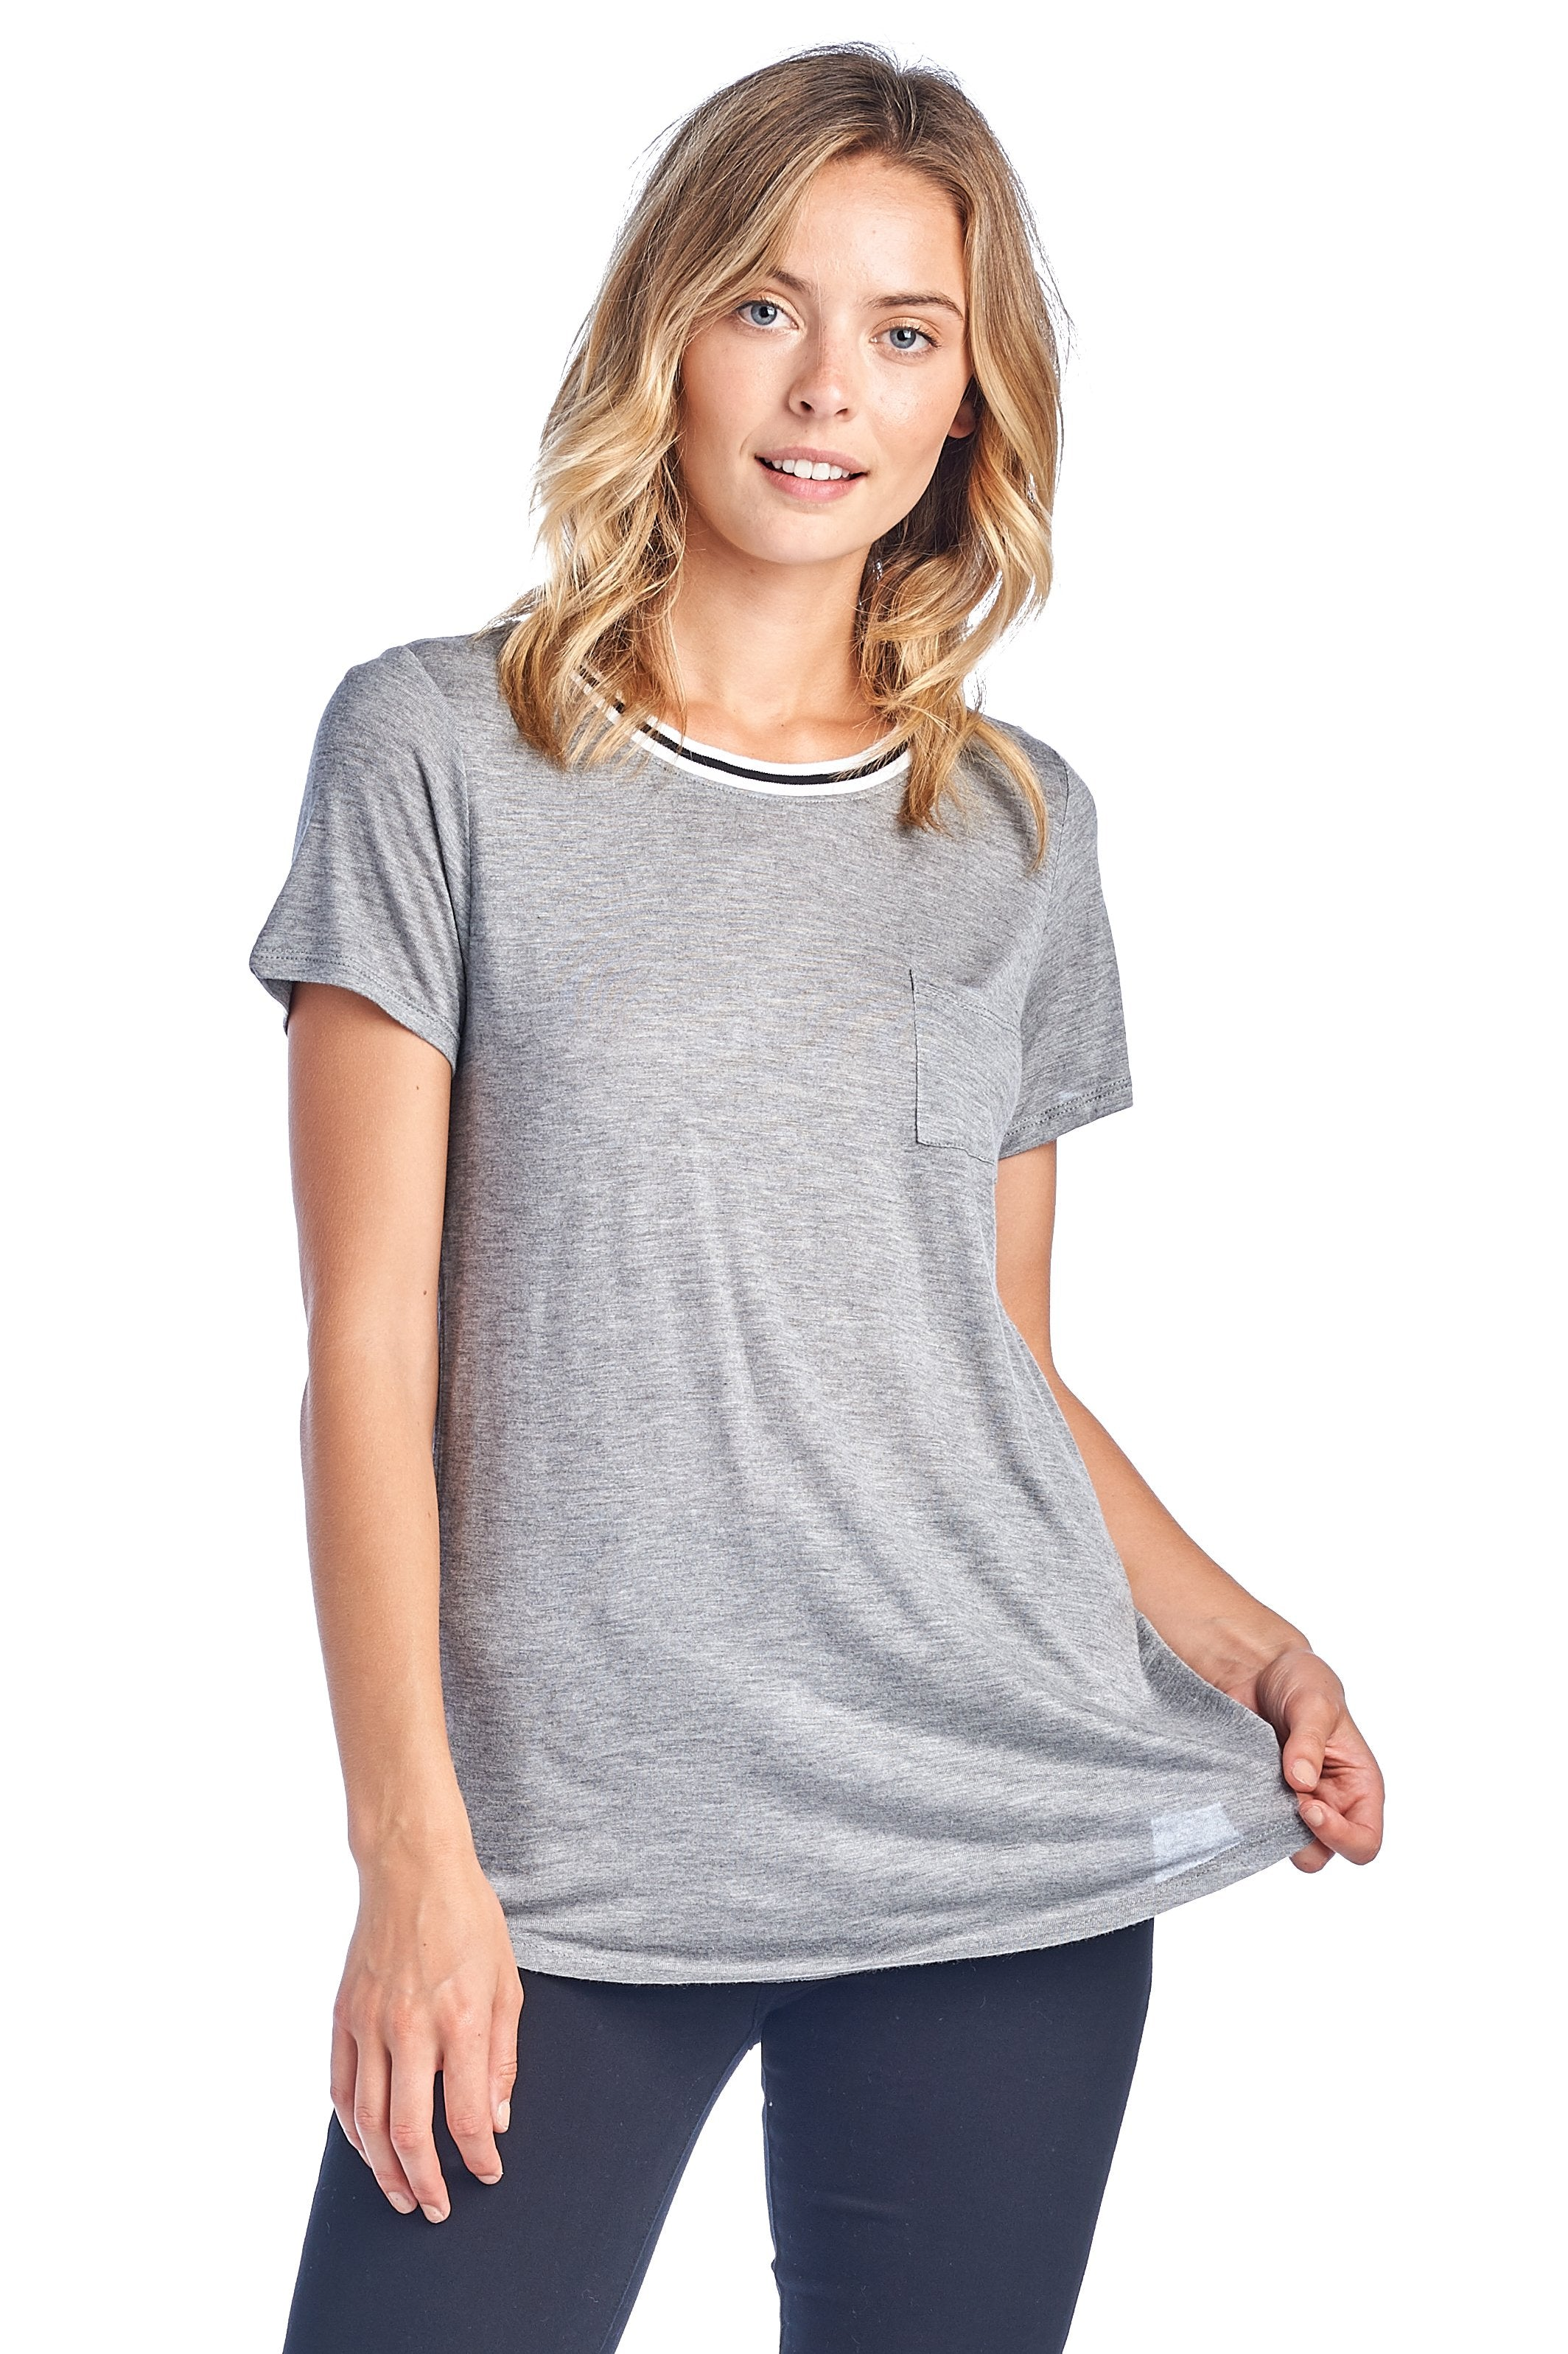 Women's Short Sleeve Crewneck Stripe Trim With Pocket Ringer Loose Fit Casual Basic Tee T-Shirt